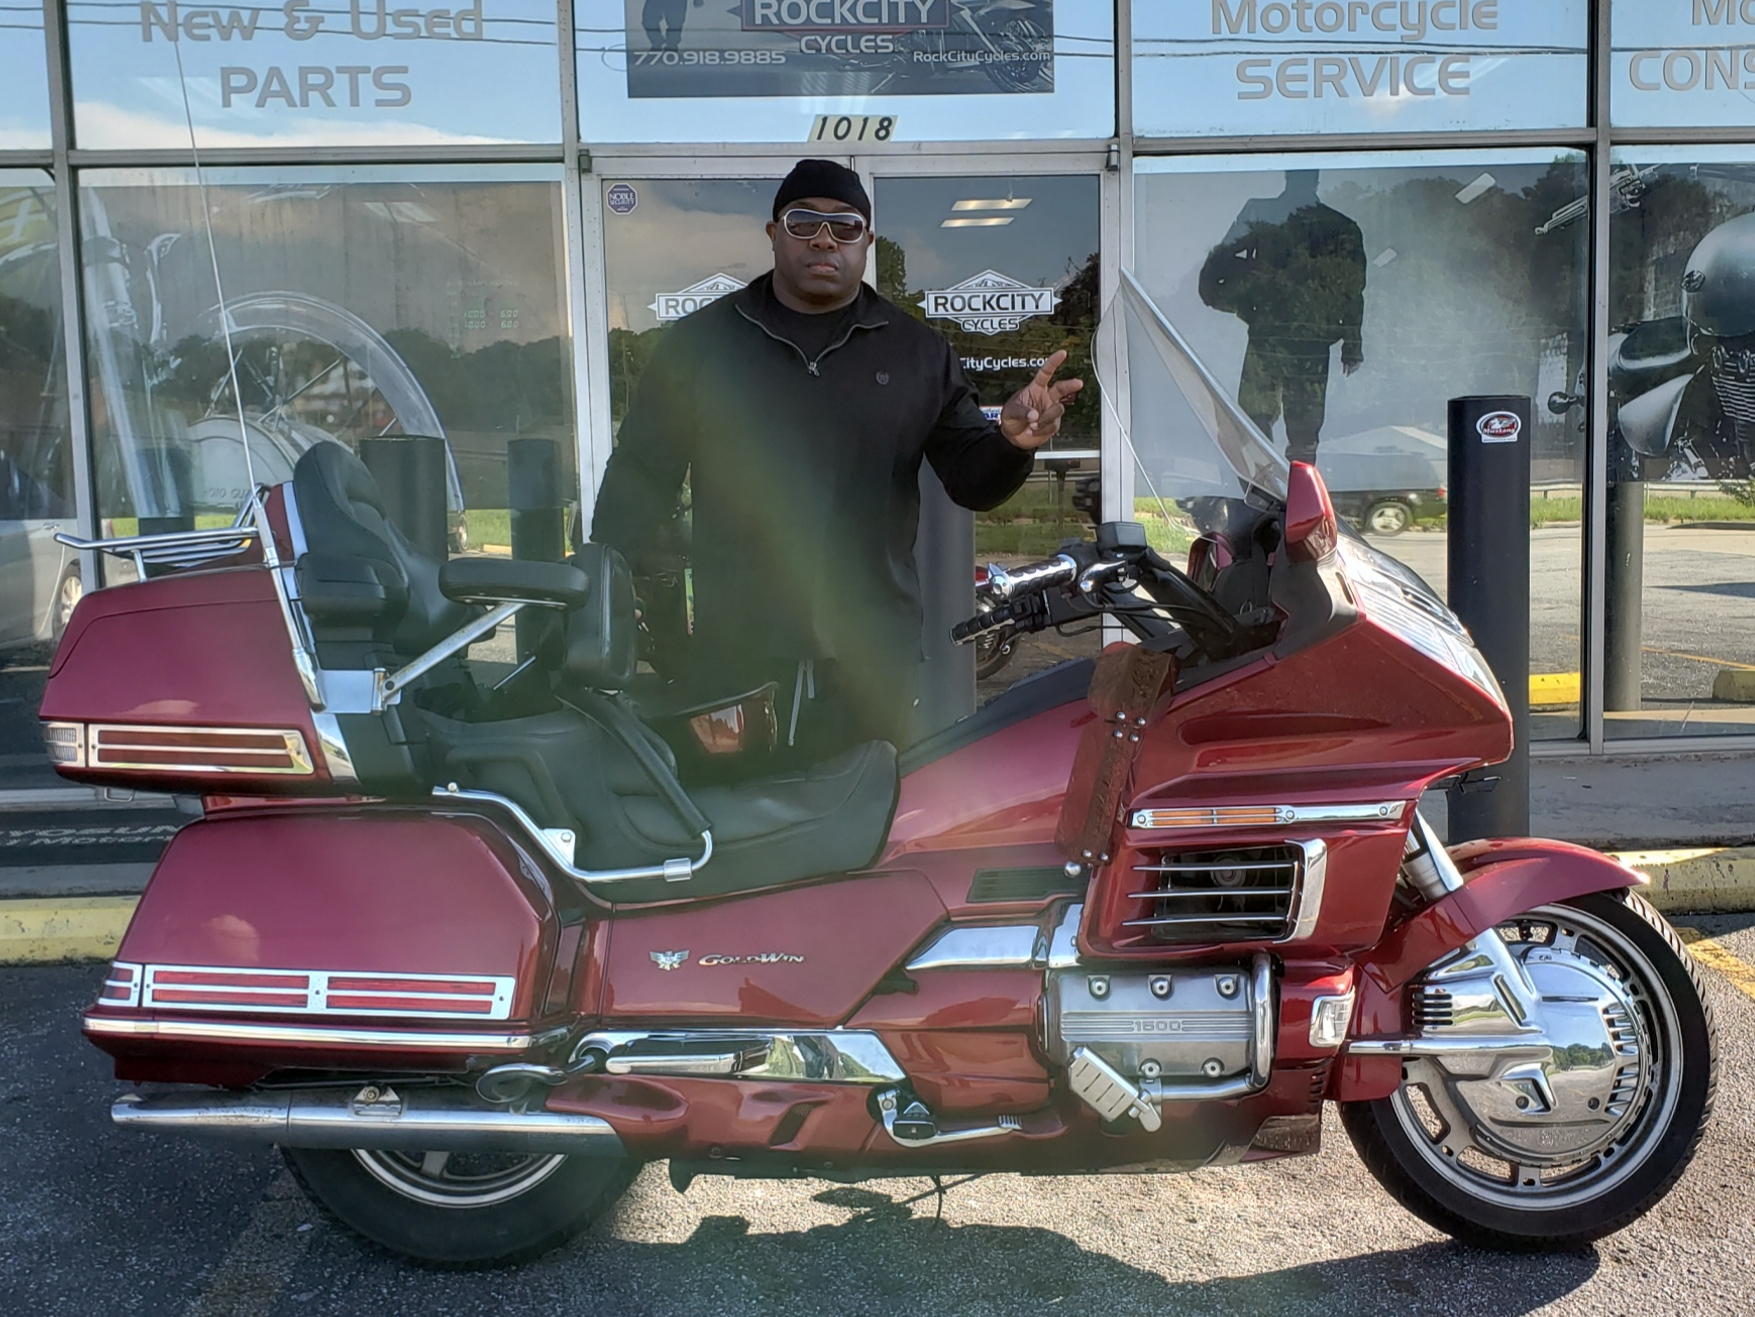 Christopher T. with his 1998 Honda Gold Wing Aspencade